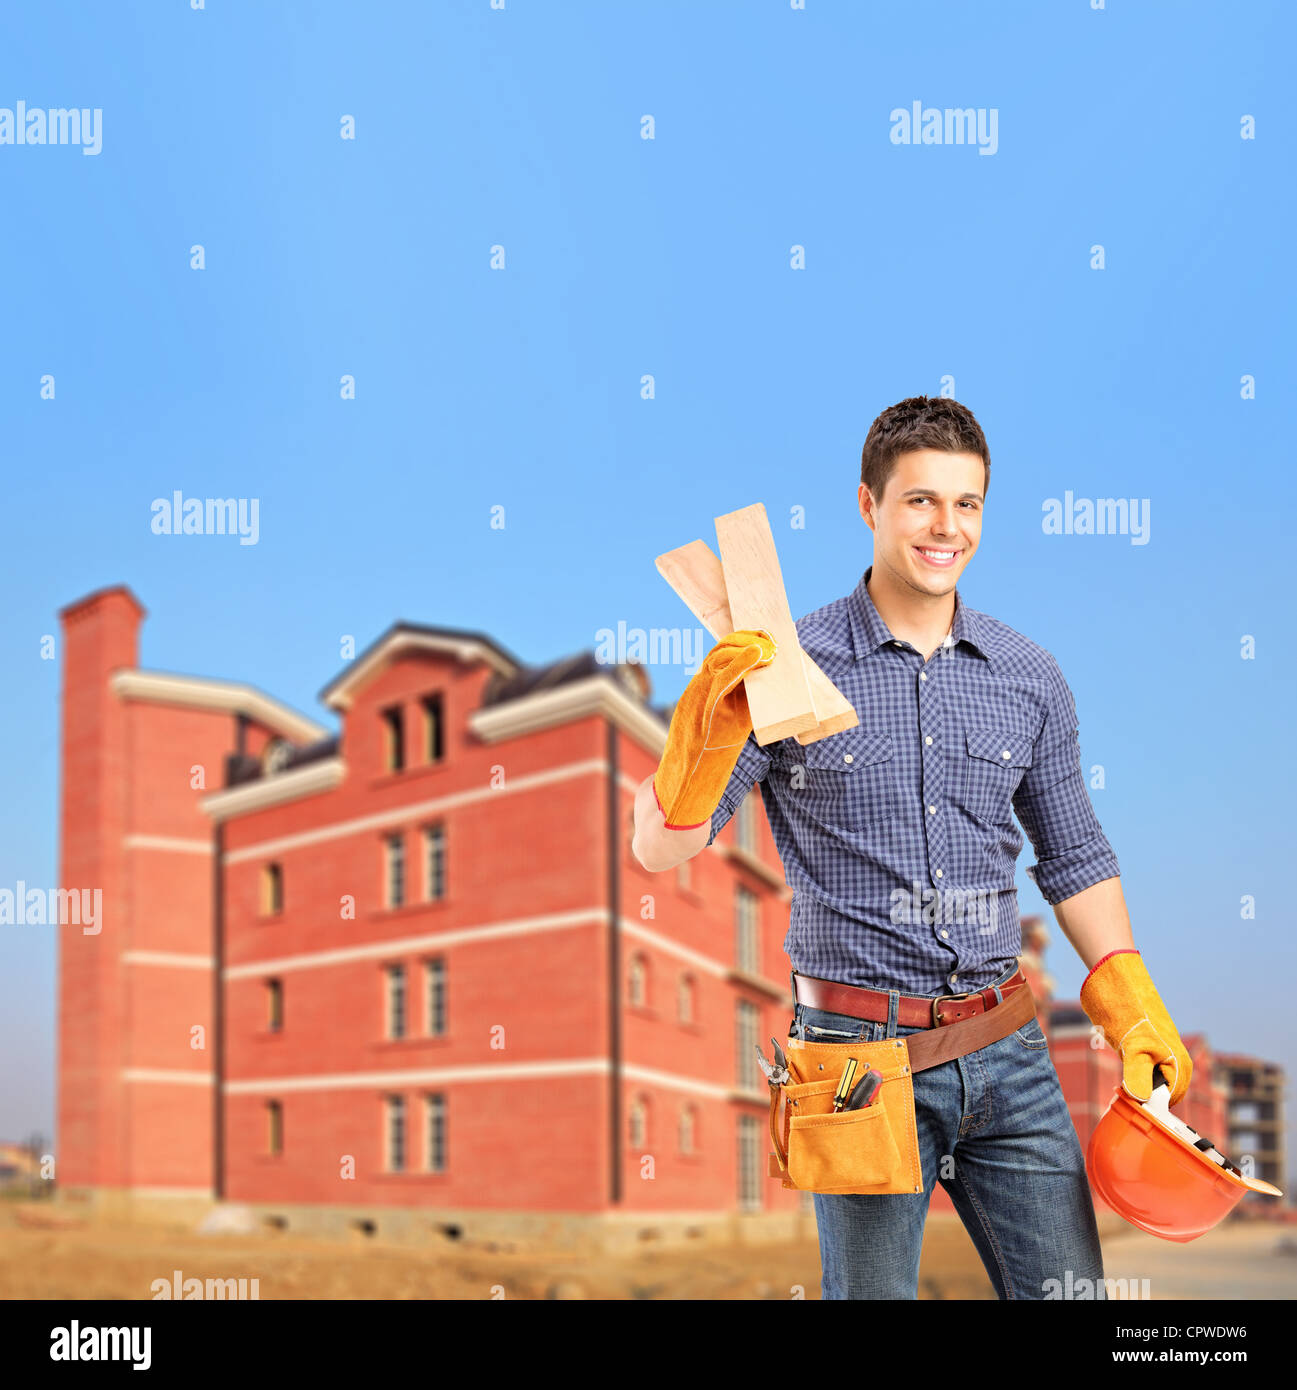 Smiling carpenter holding sills with a newly built apartment block in the background - Stock Image